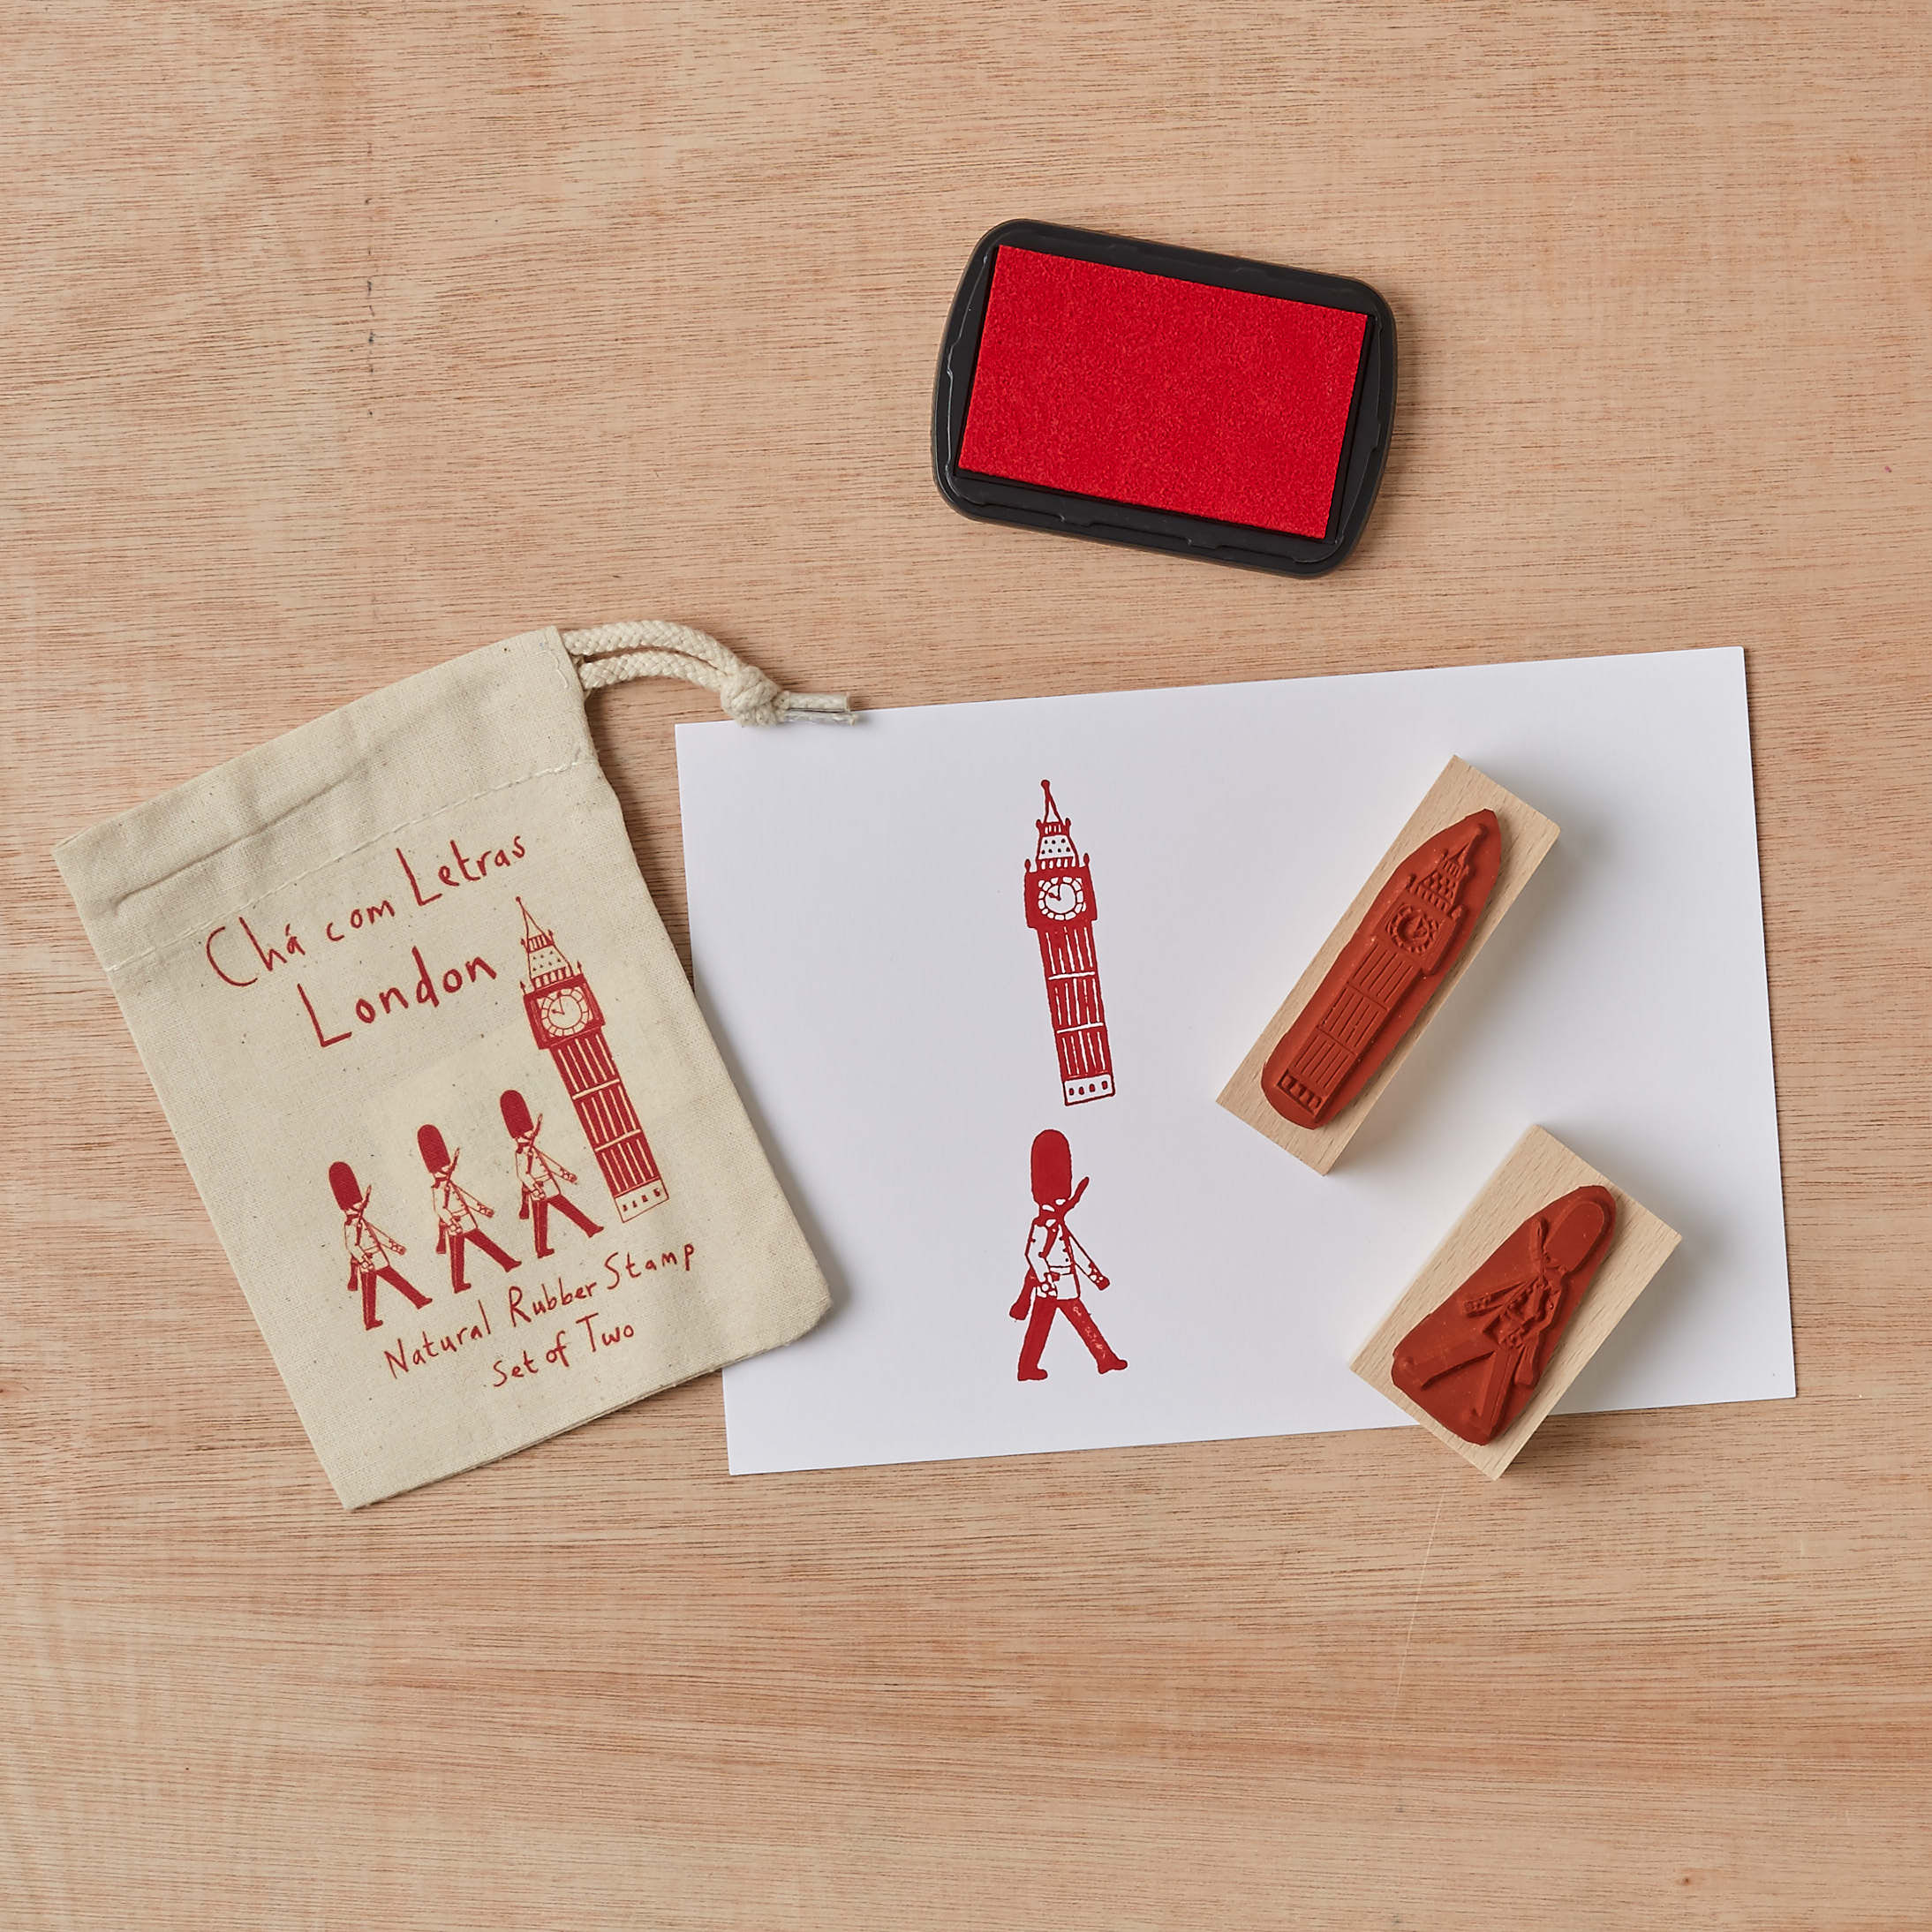 London rubber stamps singles from £3.jpg